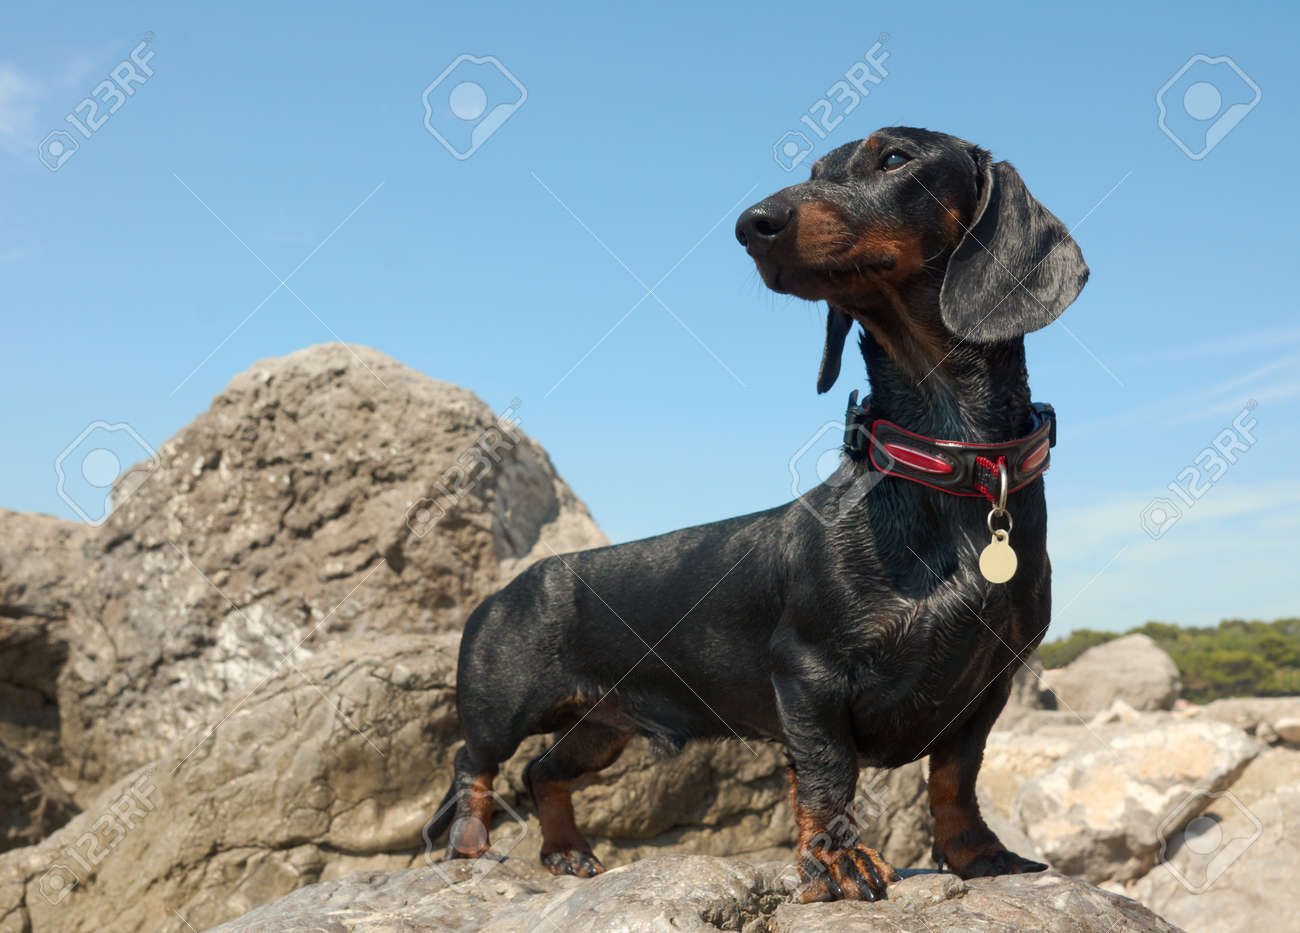 Dachshund puppy, 9 months old,   on stone  after swimming Stock Photo - 26245779